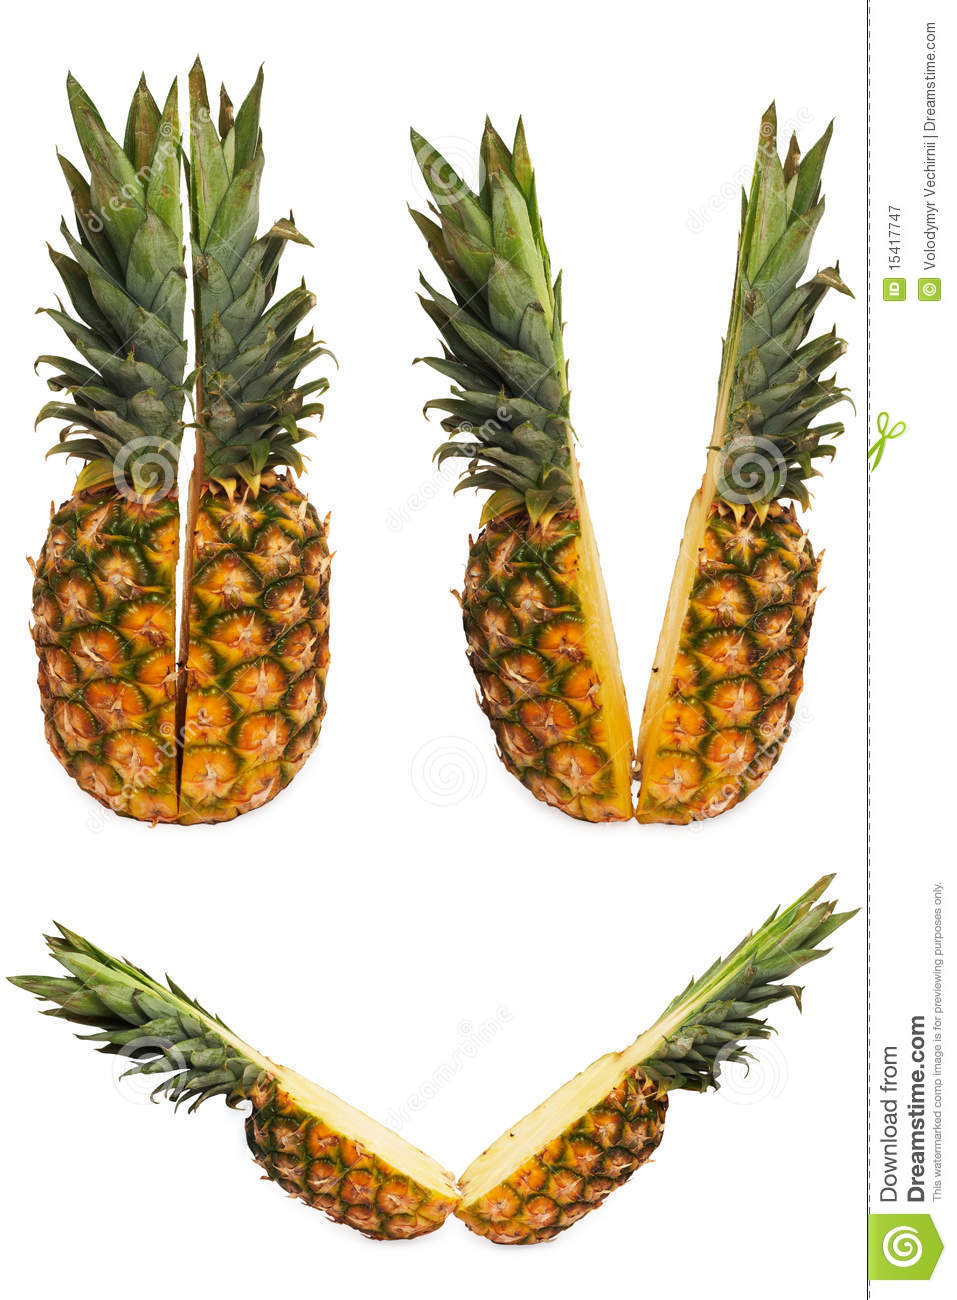 Set of Two halves of pineapple